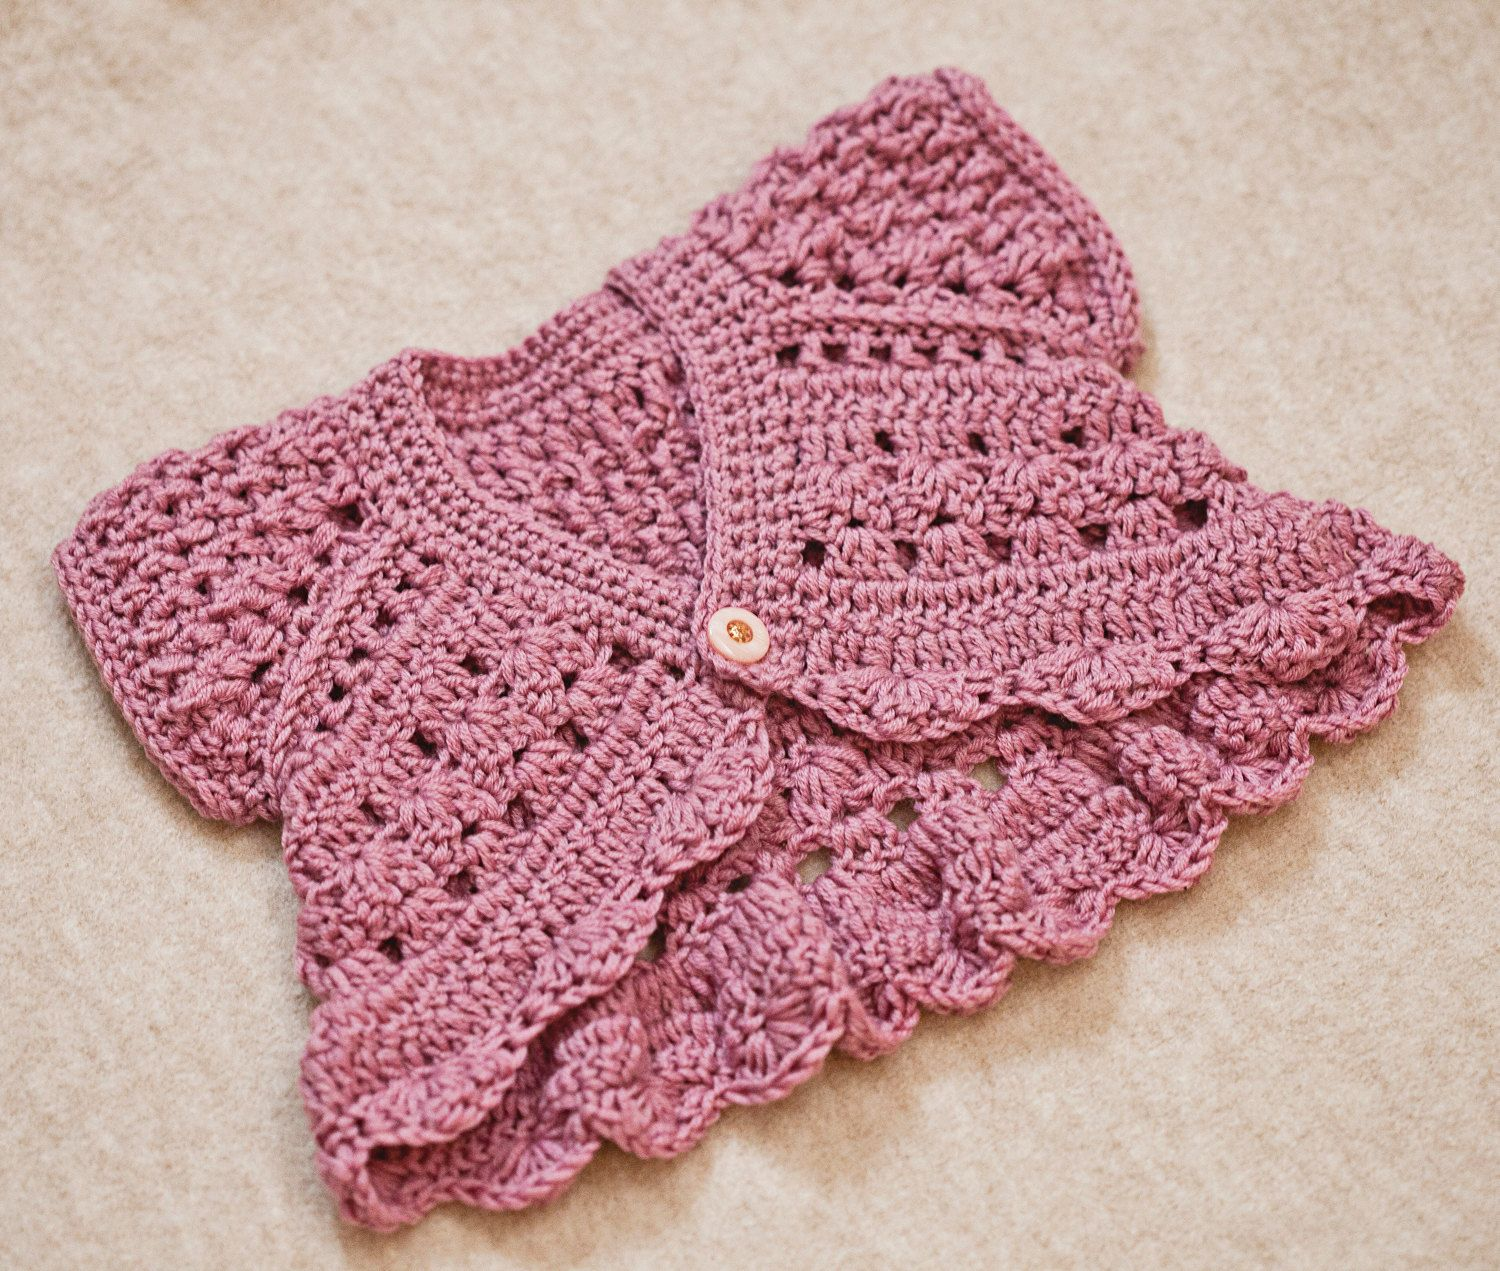 Crochet PATTERN - Butterfly Shrug - Cardigan (sizes baby up to 6 ...